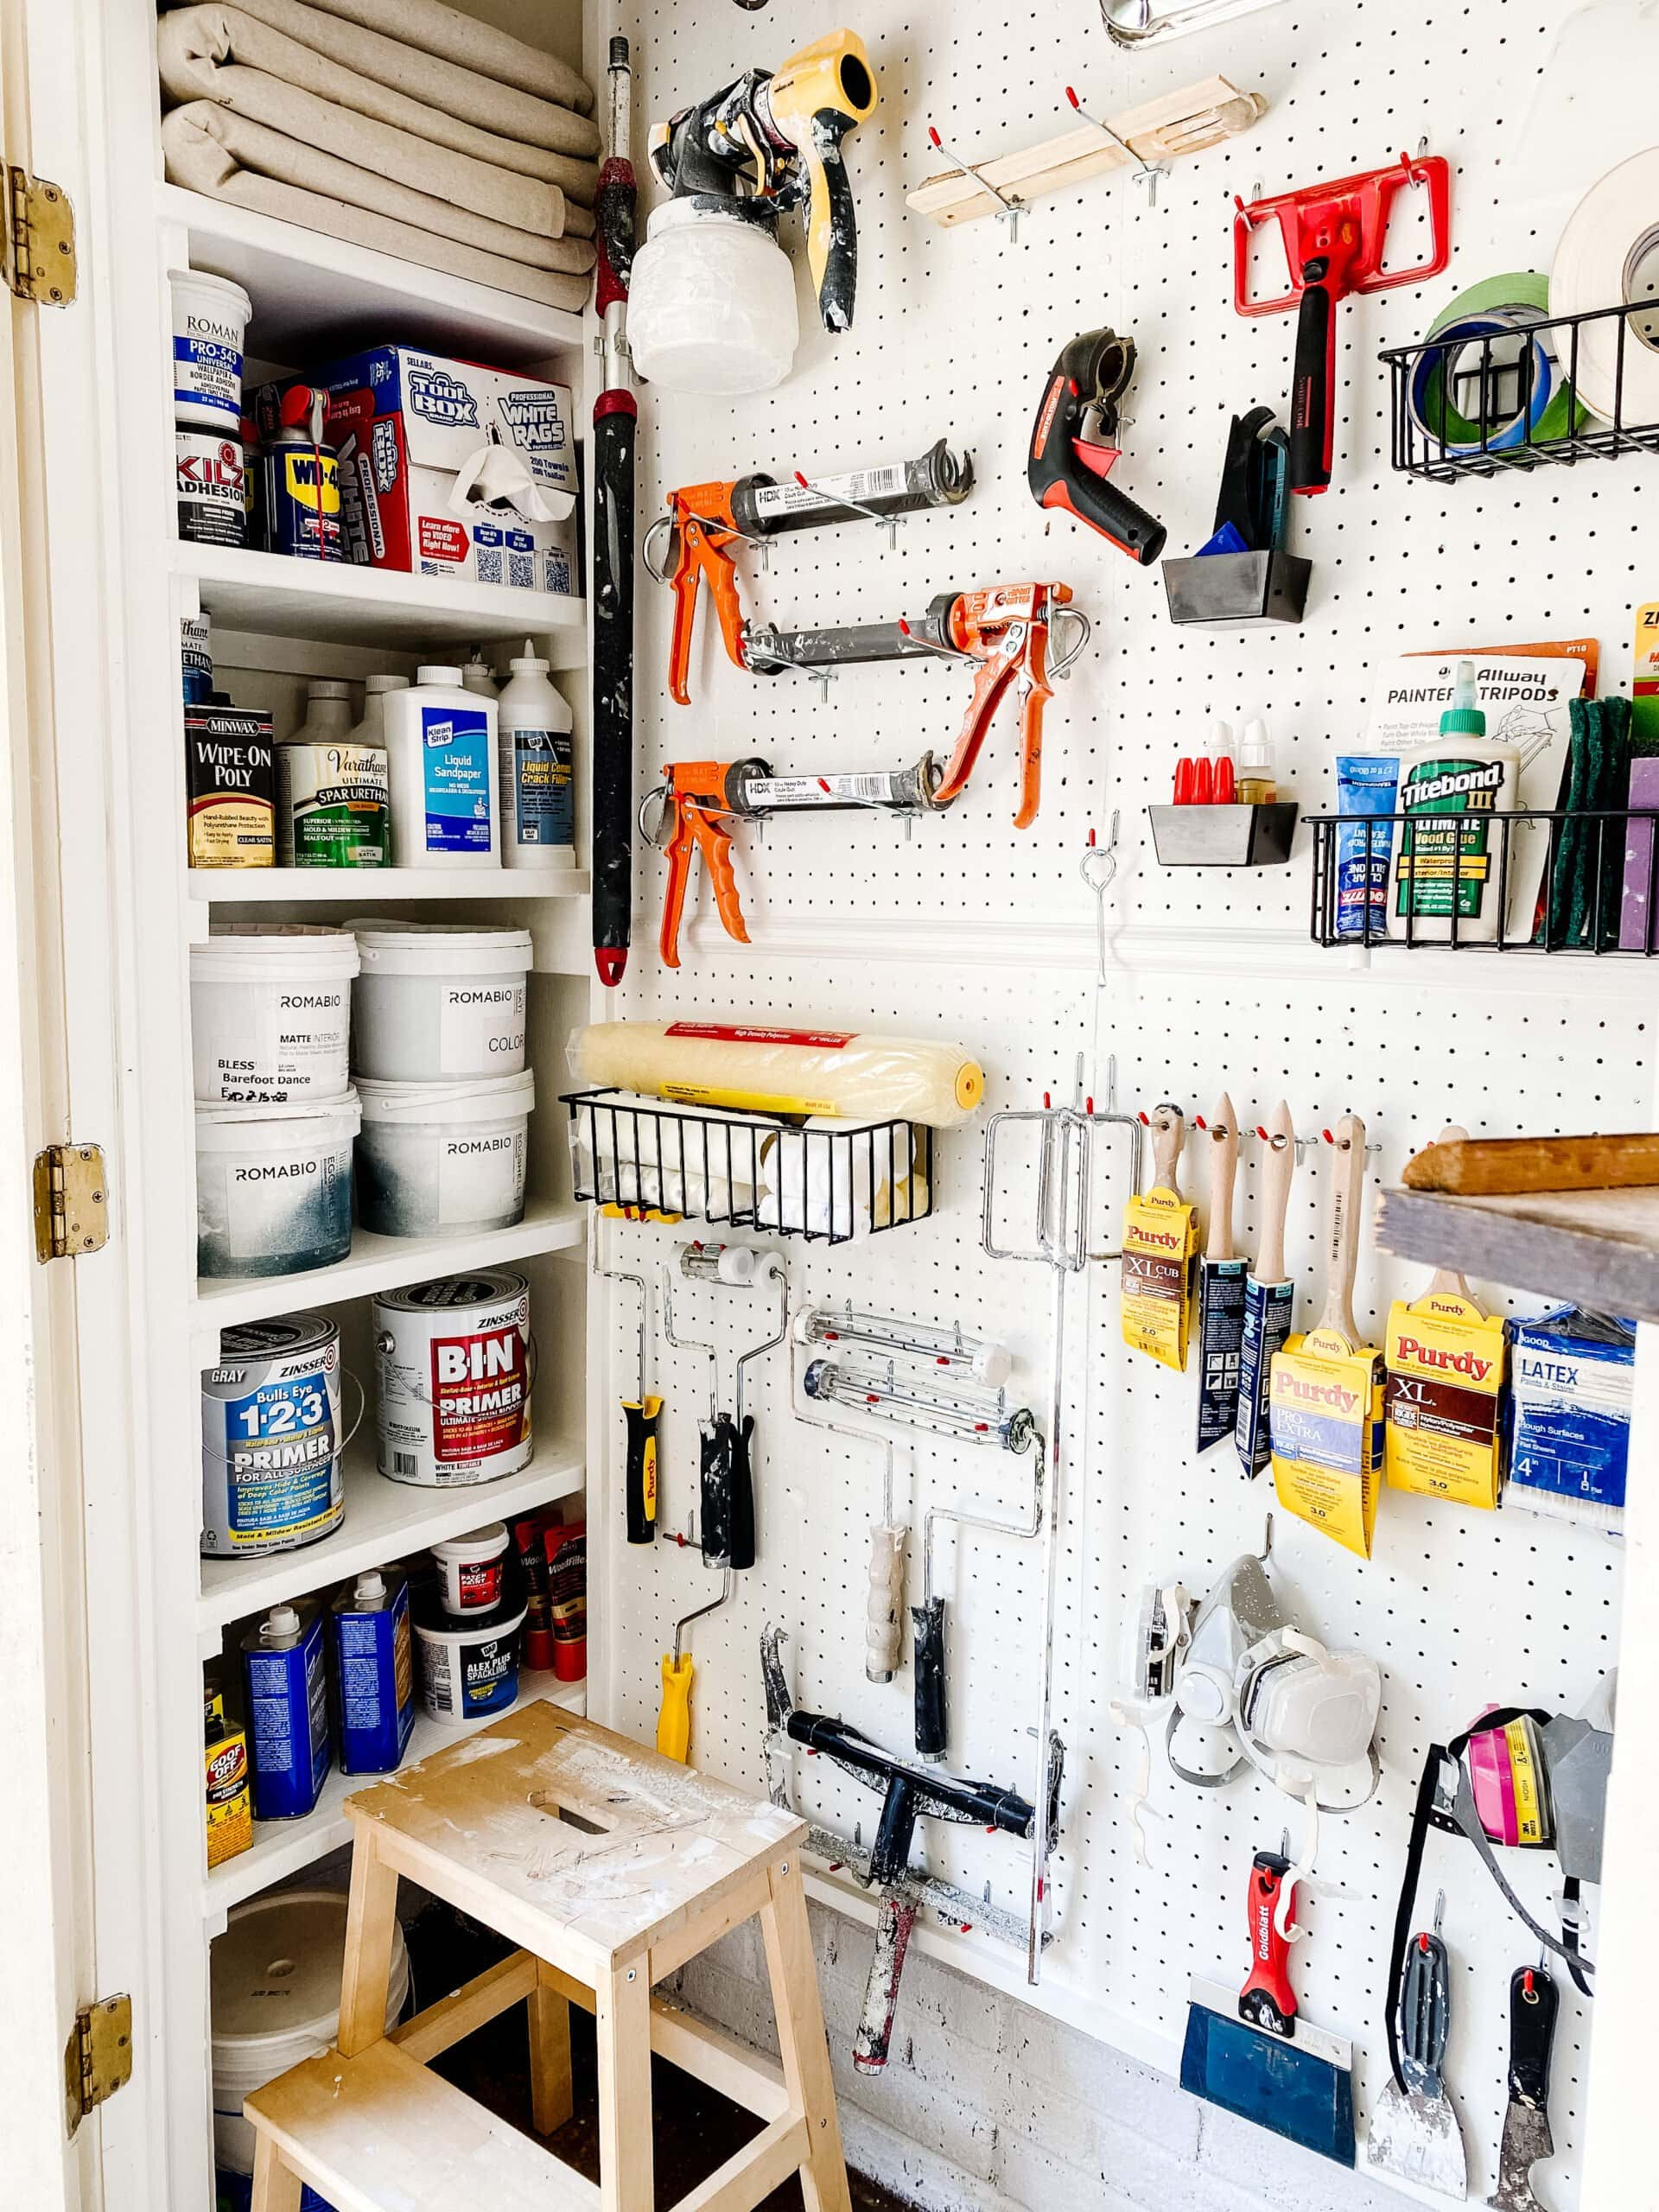 organizing paint supplies with DIY shelves and pegboard hooks and baskets